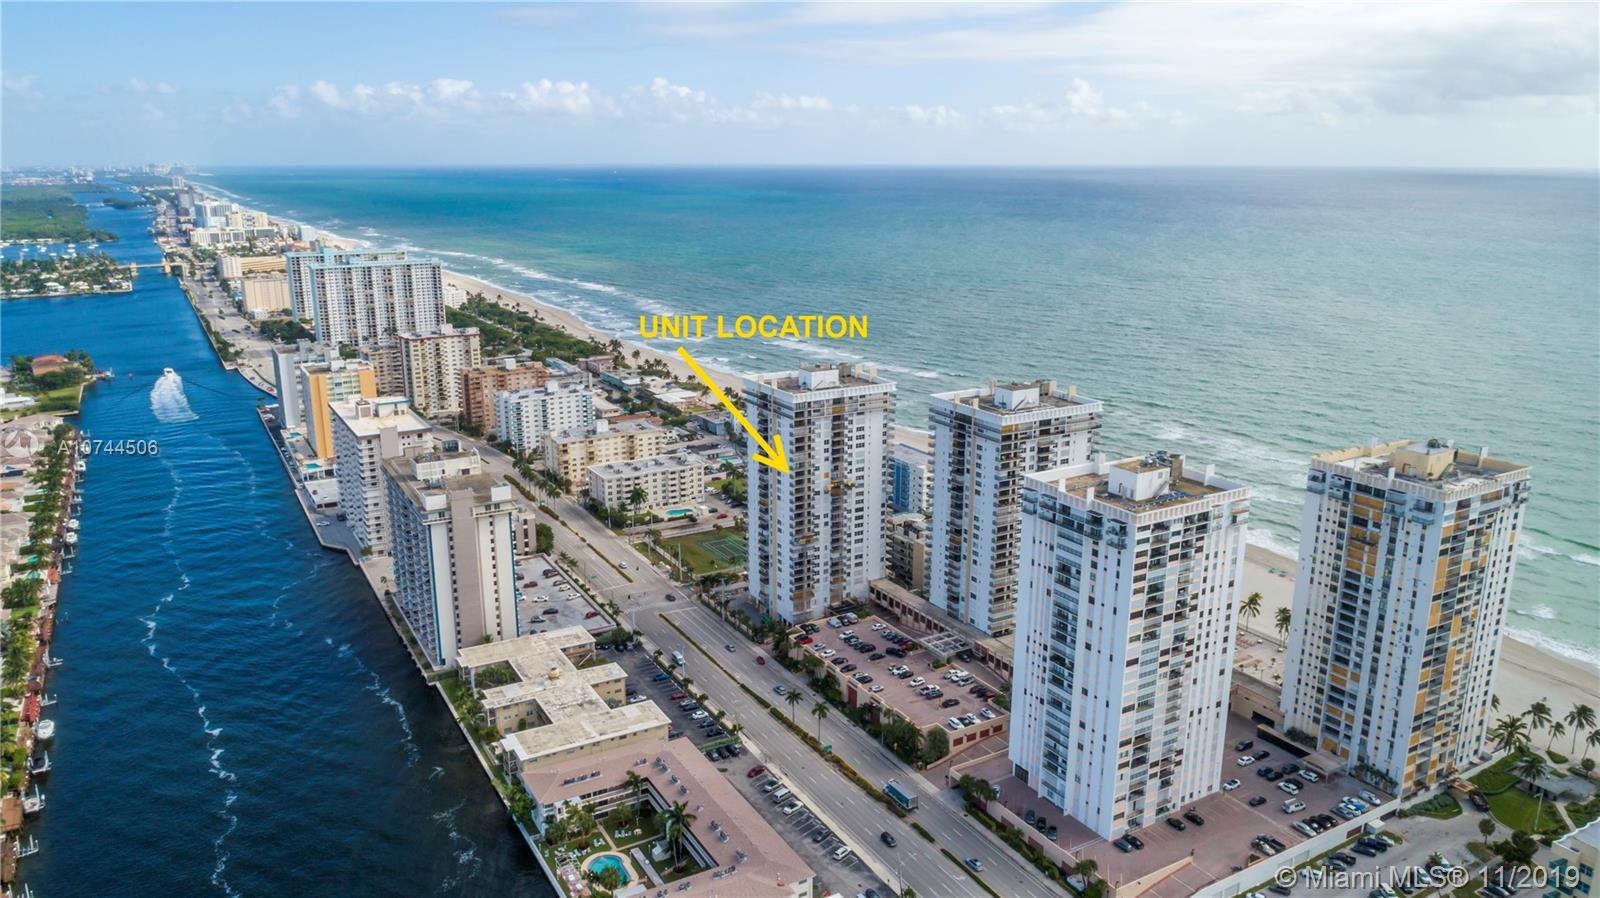 2101 S Ocean Dr #2007 For Sale A10744506, FL